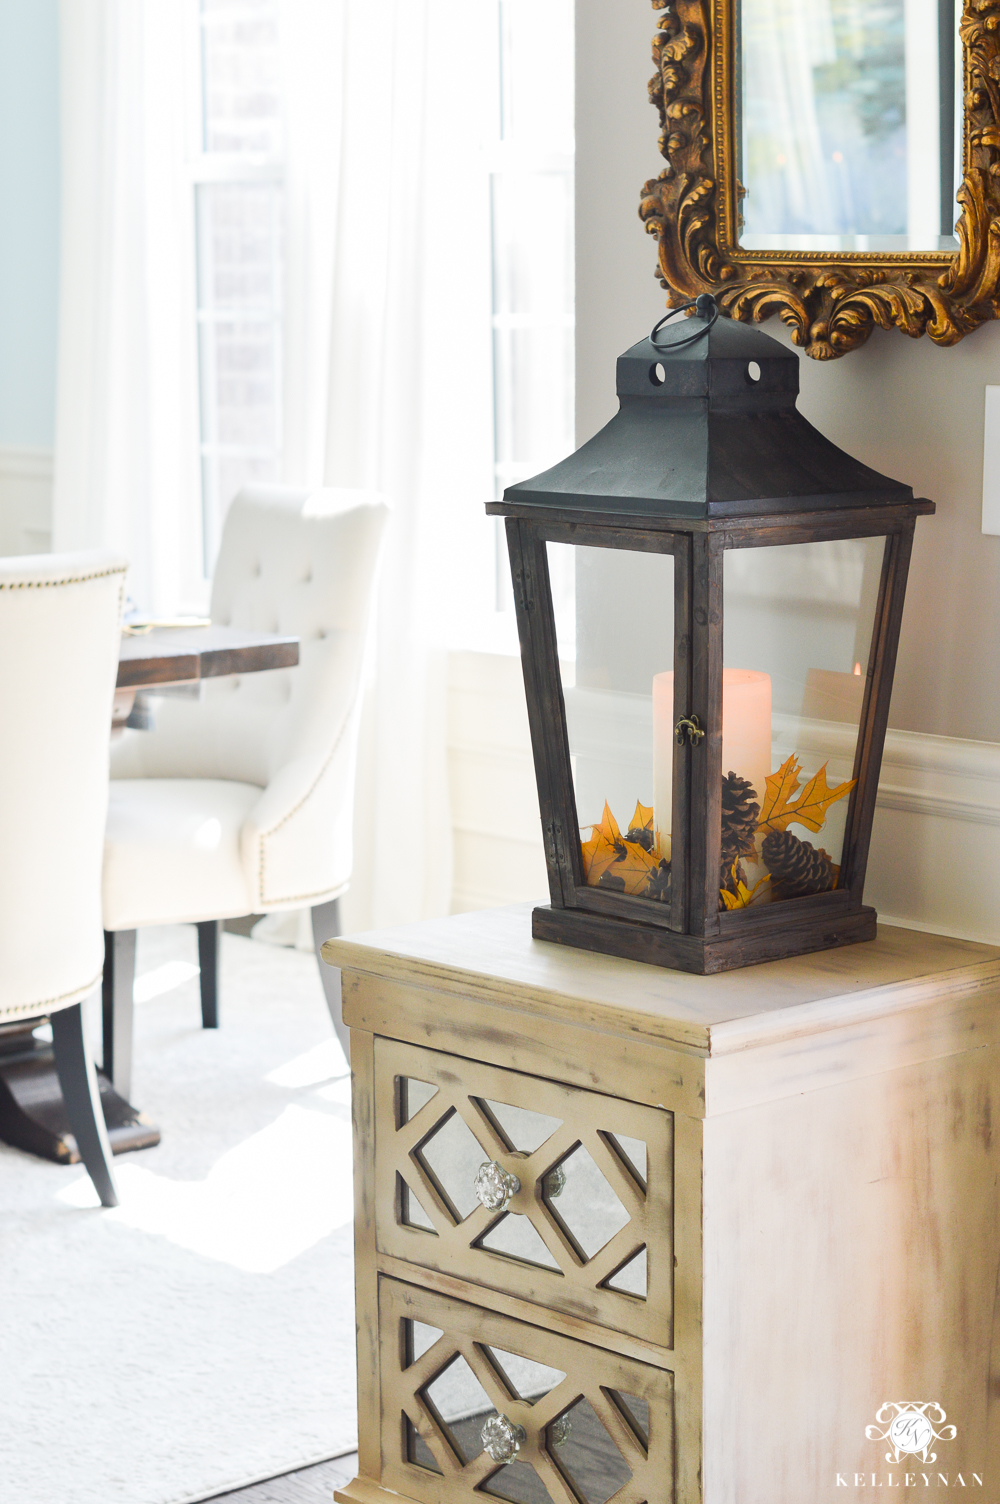 2017 Fall Home Tour with Yellow and Orange Leaves- entry lantern